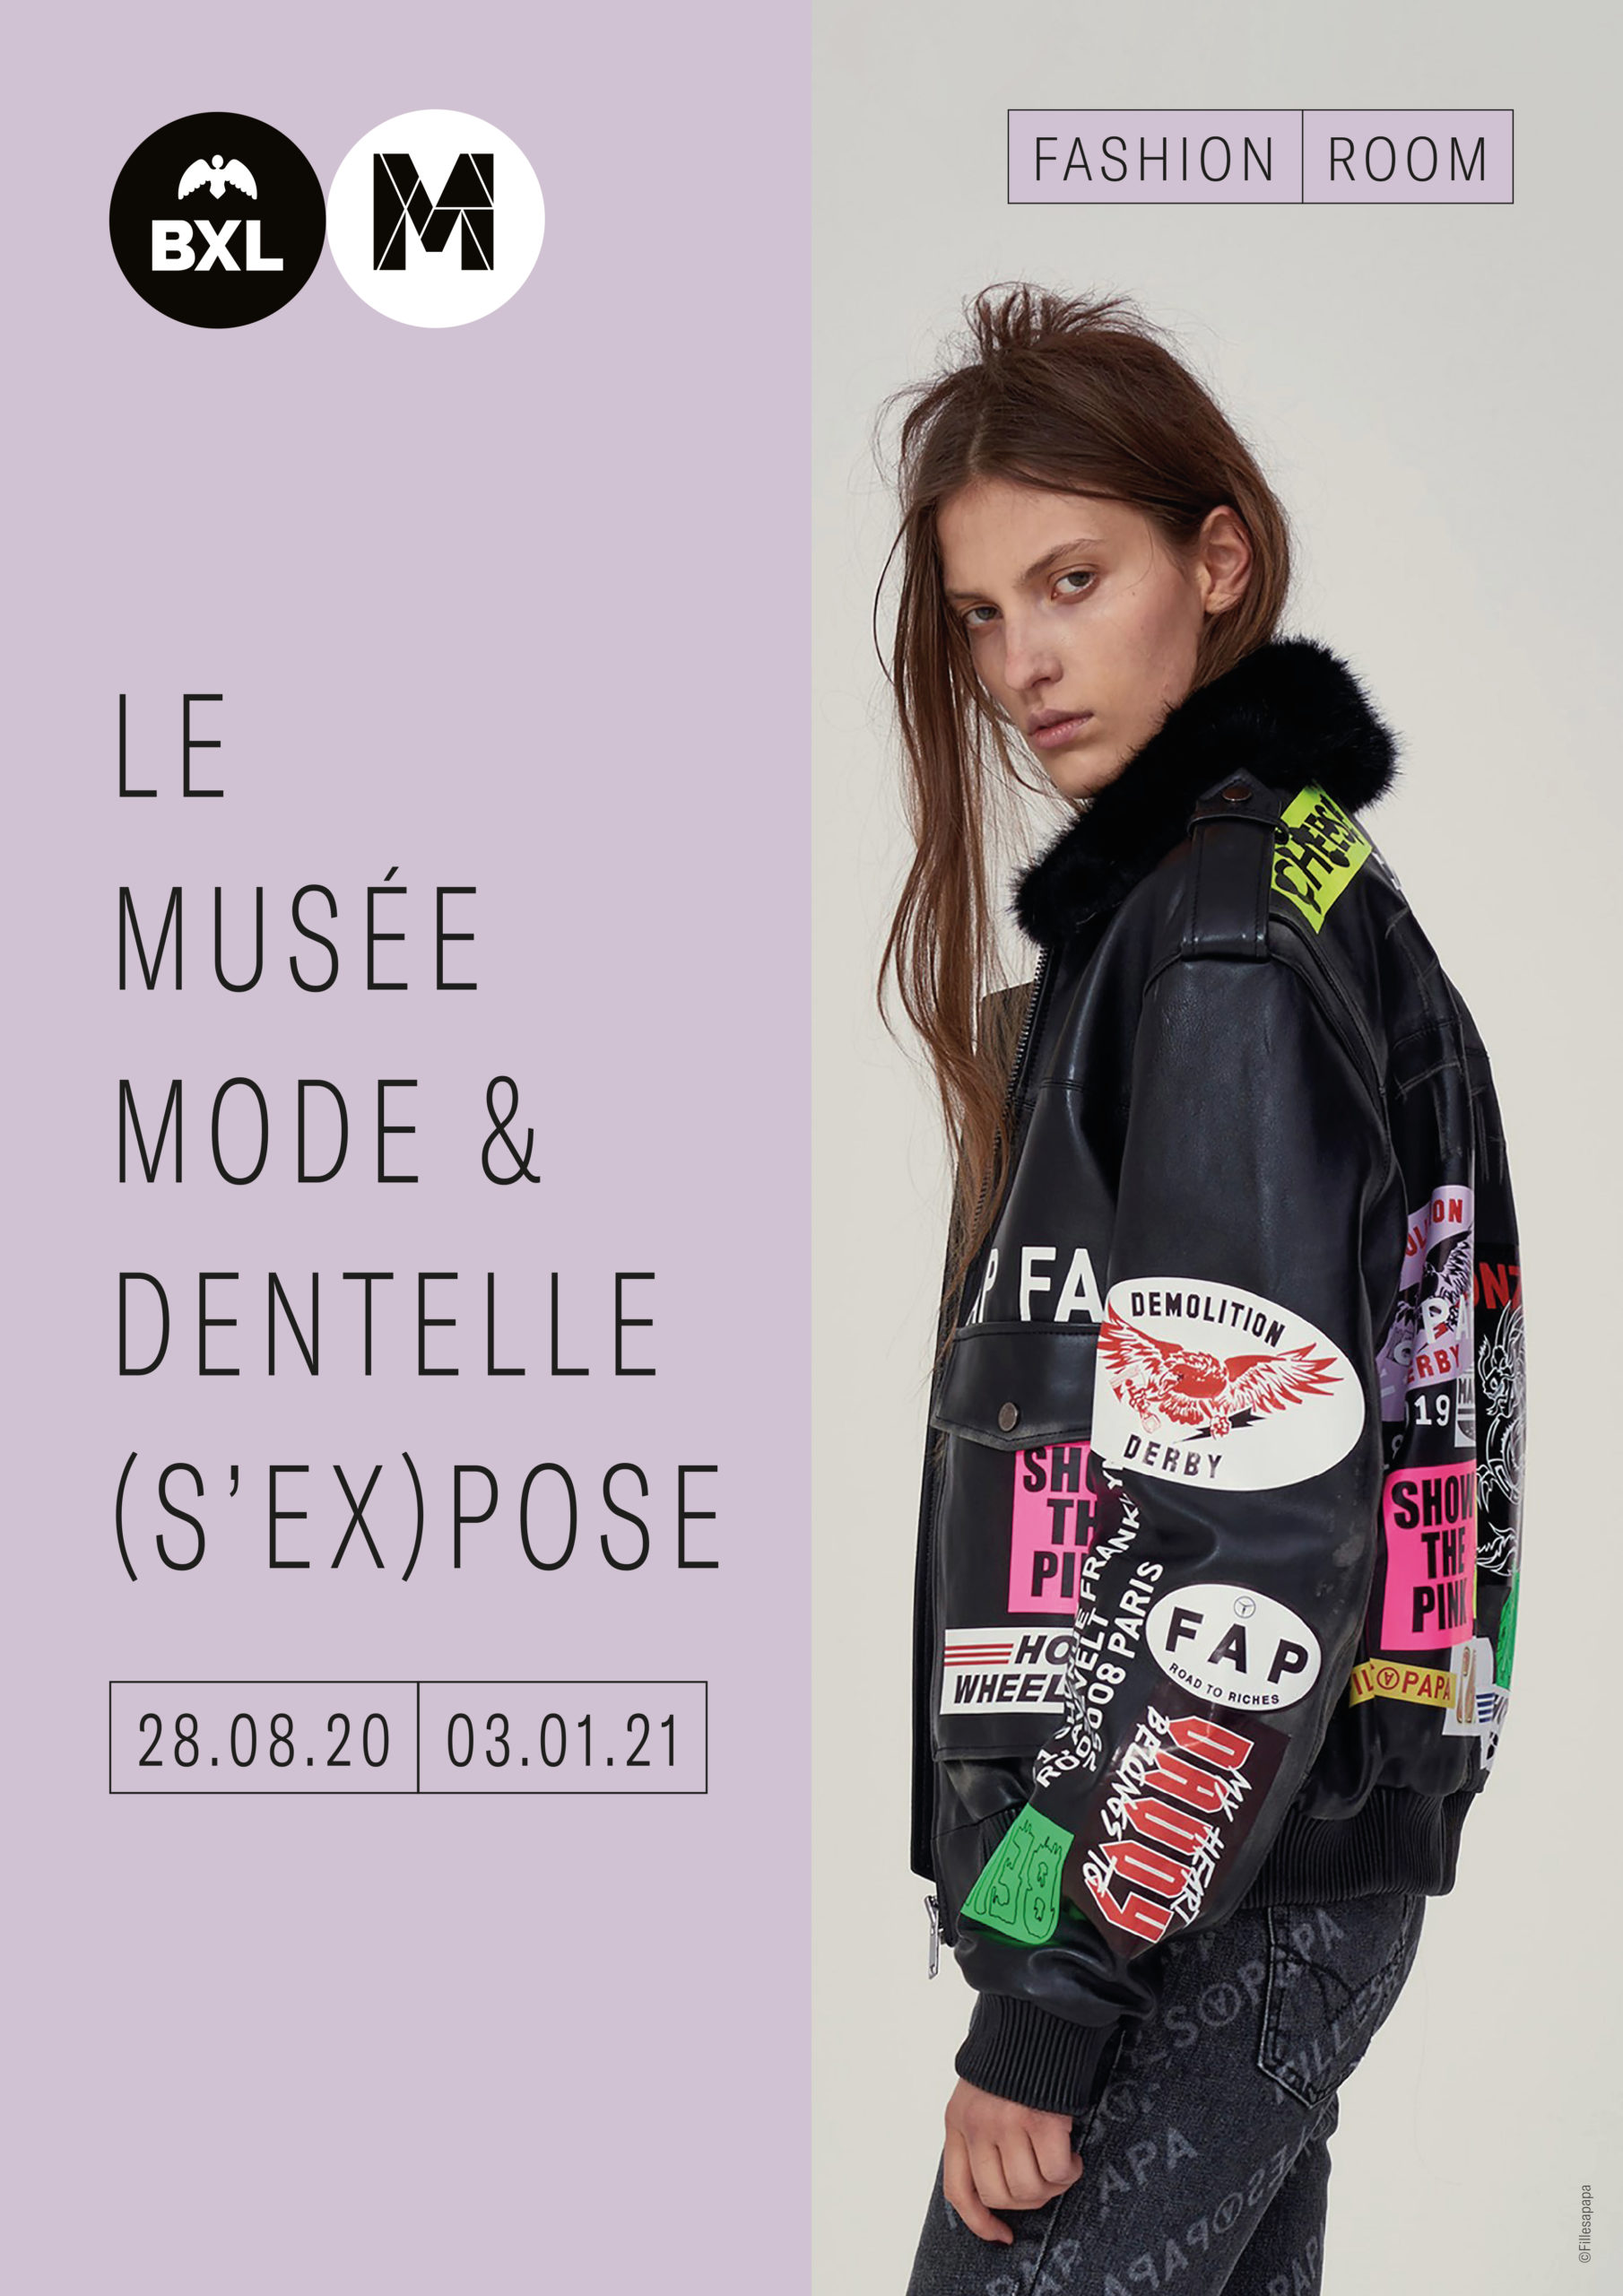 Fashion Room #2 : Le Musée Mode & Dentelle (s'ex)pose © Musee Mode & Dentelle